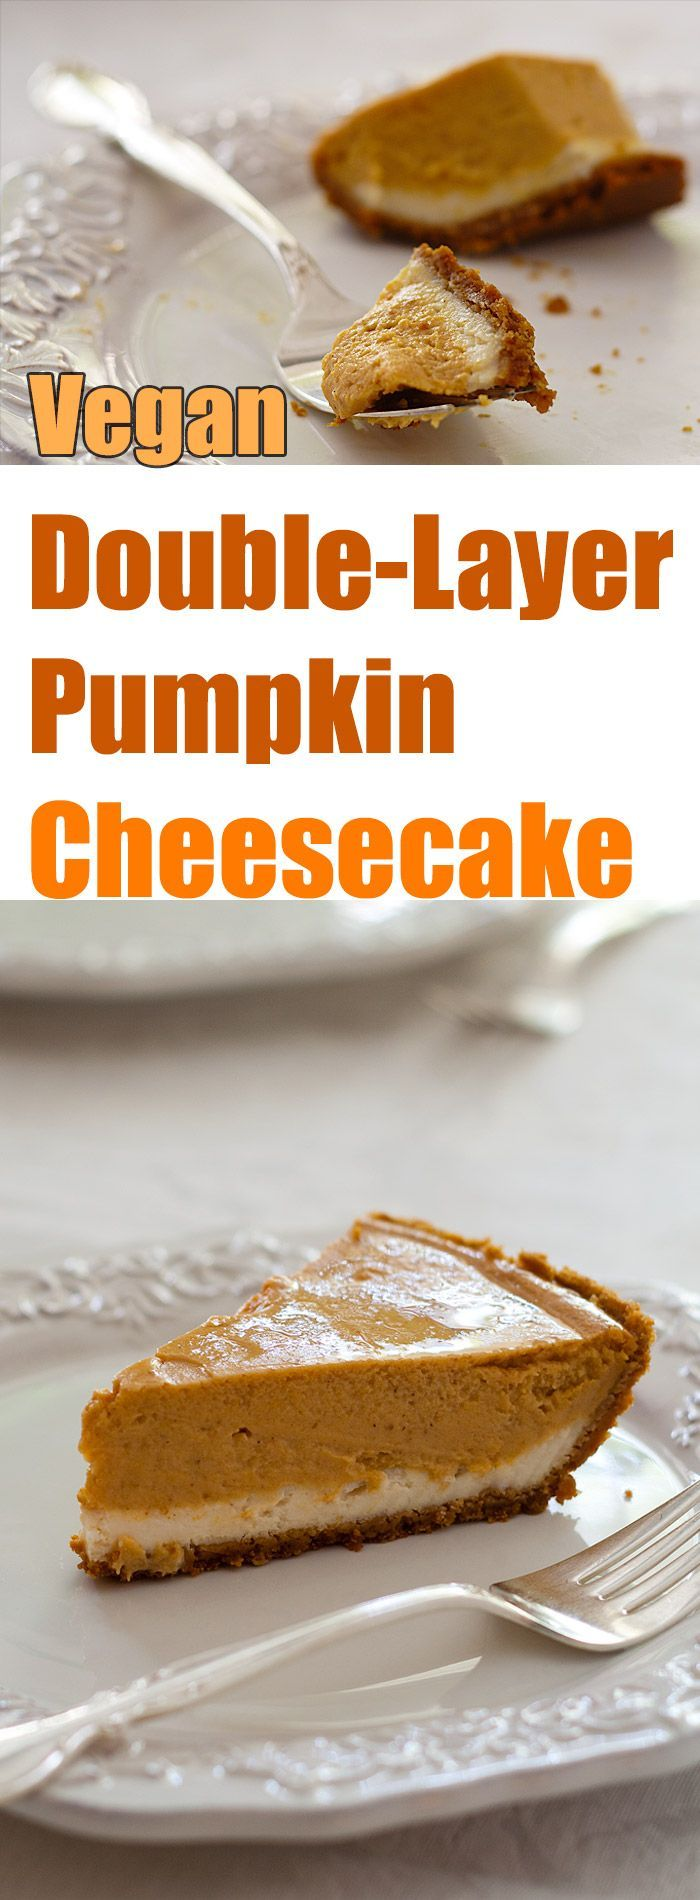 This amazing vegan cheesecake is lightly lemon flavored on the bottom and pumpkin spice on the top.